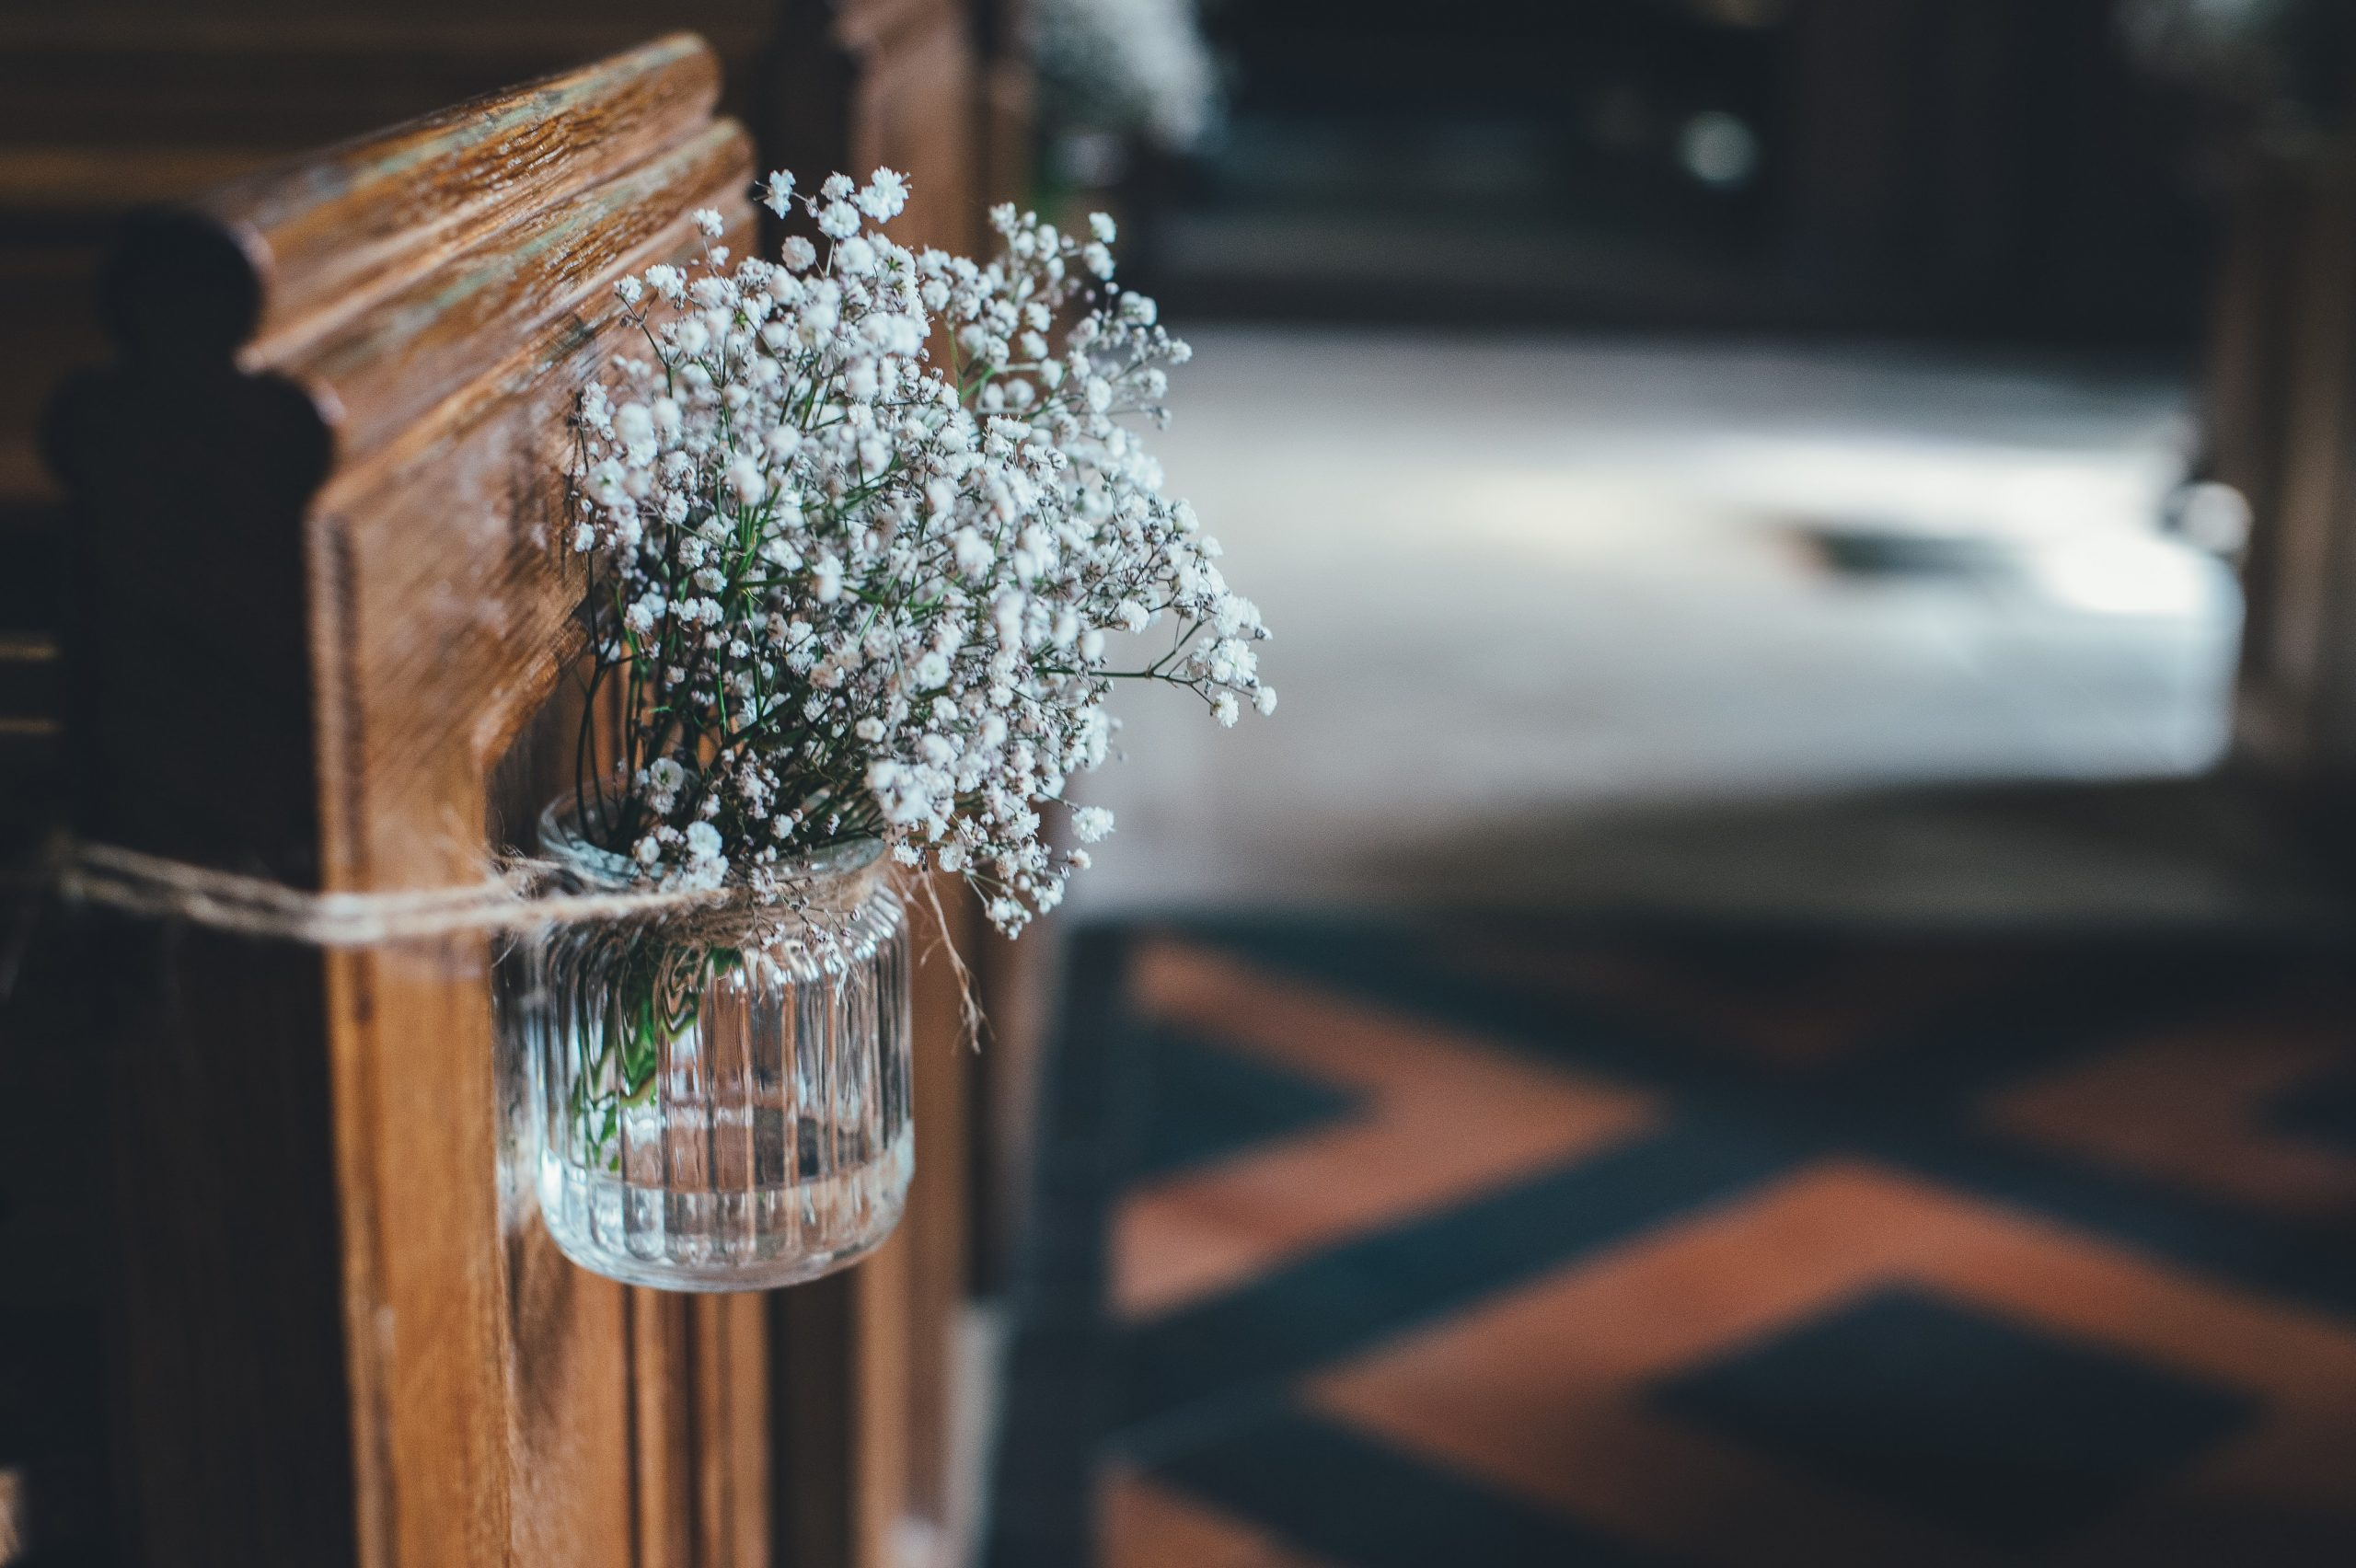 Rustic chic wedding decorations are this year's biggest trend! Not only do they look beautiful, but this rustic chic look means that you can make a majority of the items on this list without a problem. I mean, how cute are these flower vases?